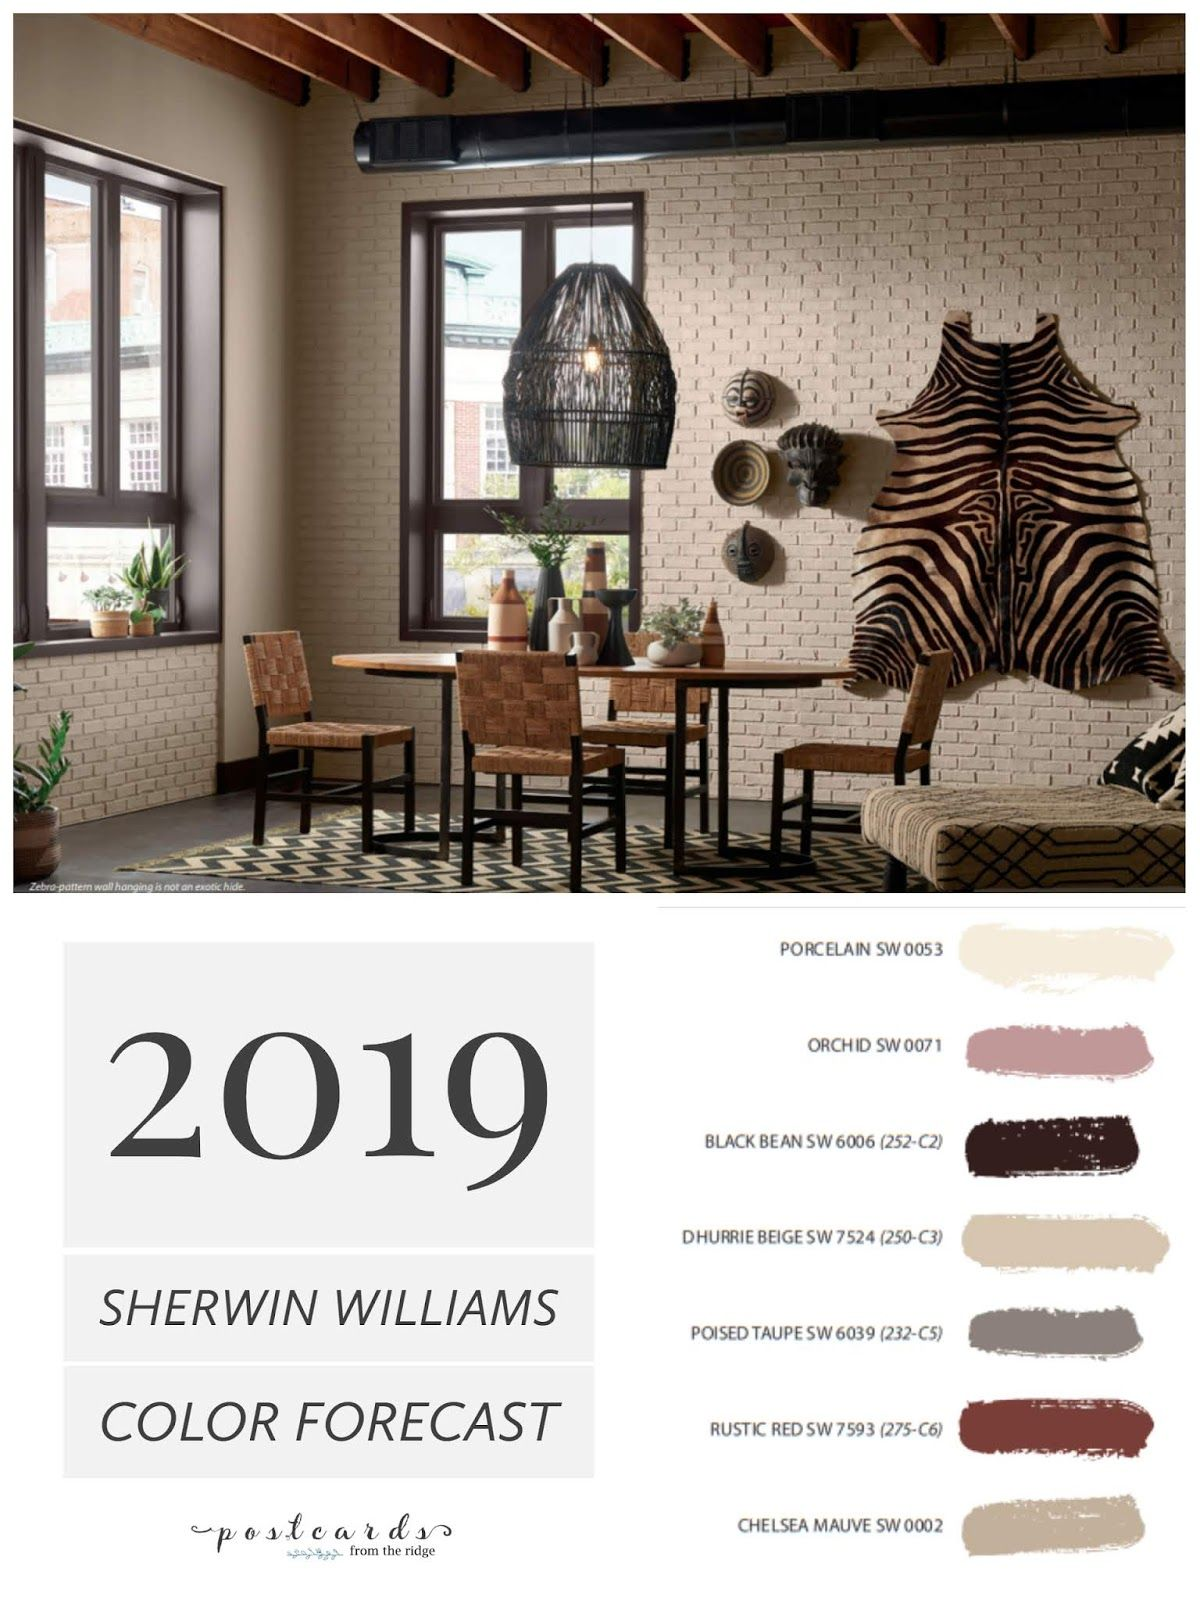 2019 Paint Color Forecast from Sherwin Williams House